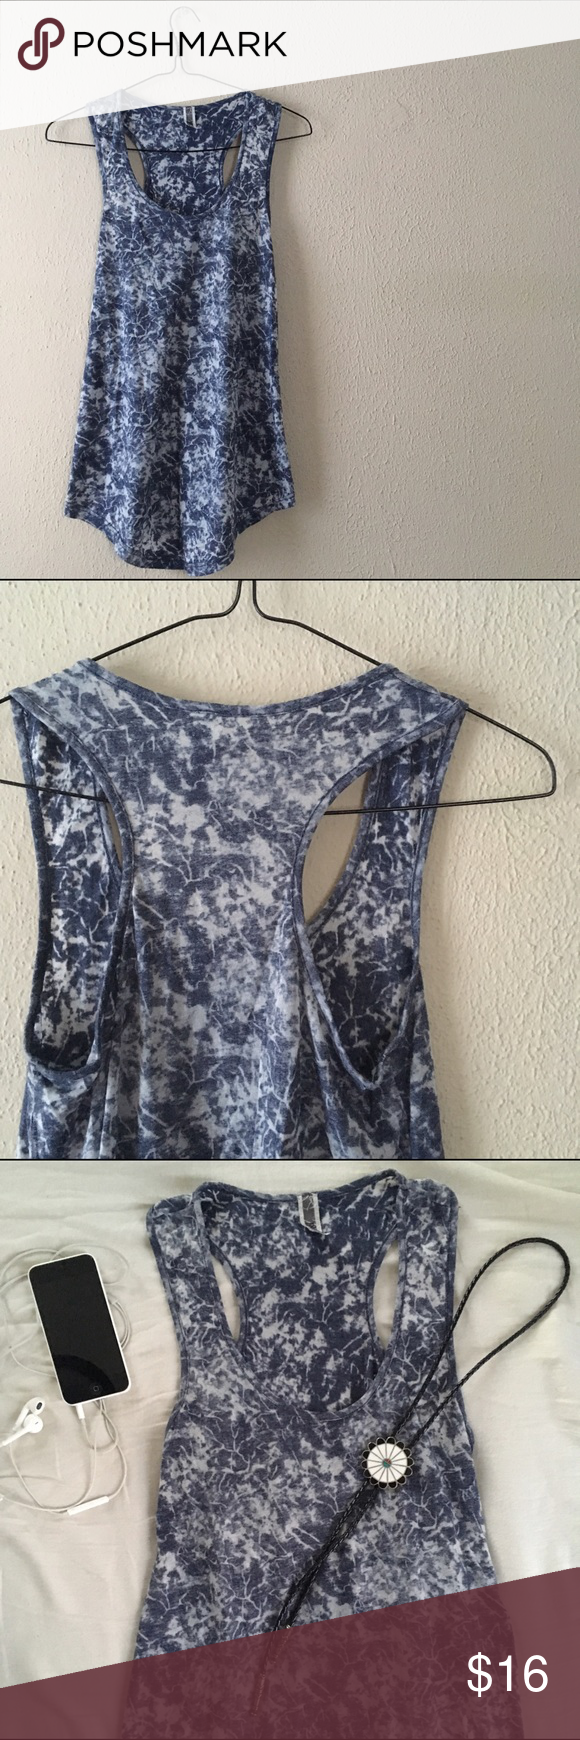 BKE Tye Dye Burnout Tank Super cute and cool blue and gray Tye dye Burnout tank//material is slightly sheer so this would look adorable with shorts and a fun bandeau top underneath//GENTLY USED/good condition/sleeveless top/scoop neck/curved hem//perfect for warm spring and summer BKE Tops Tank Tops